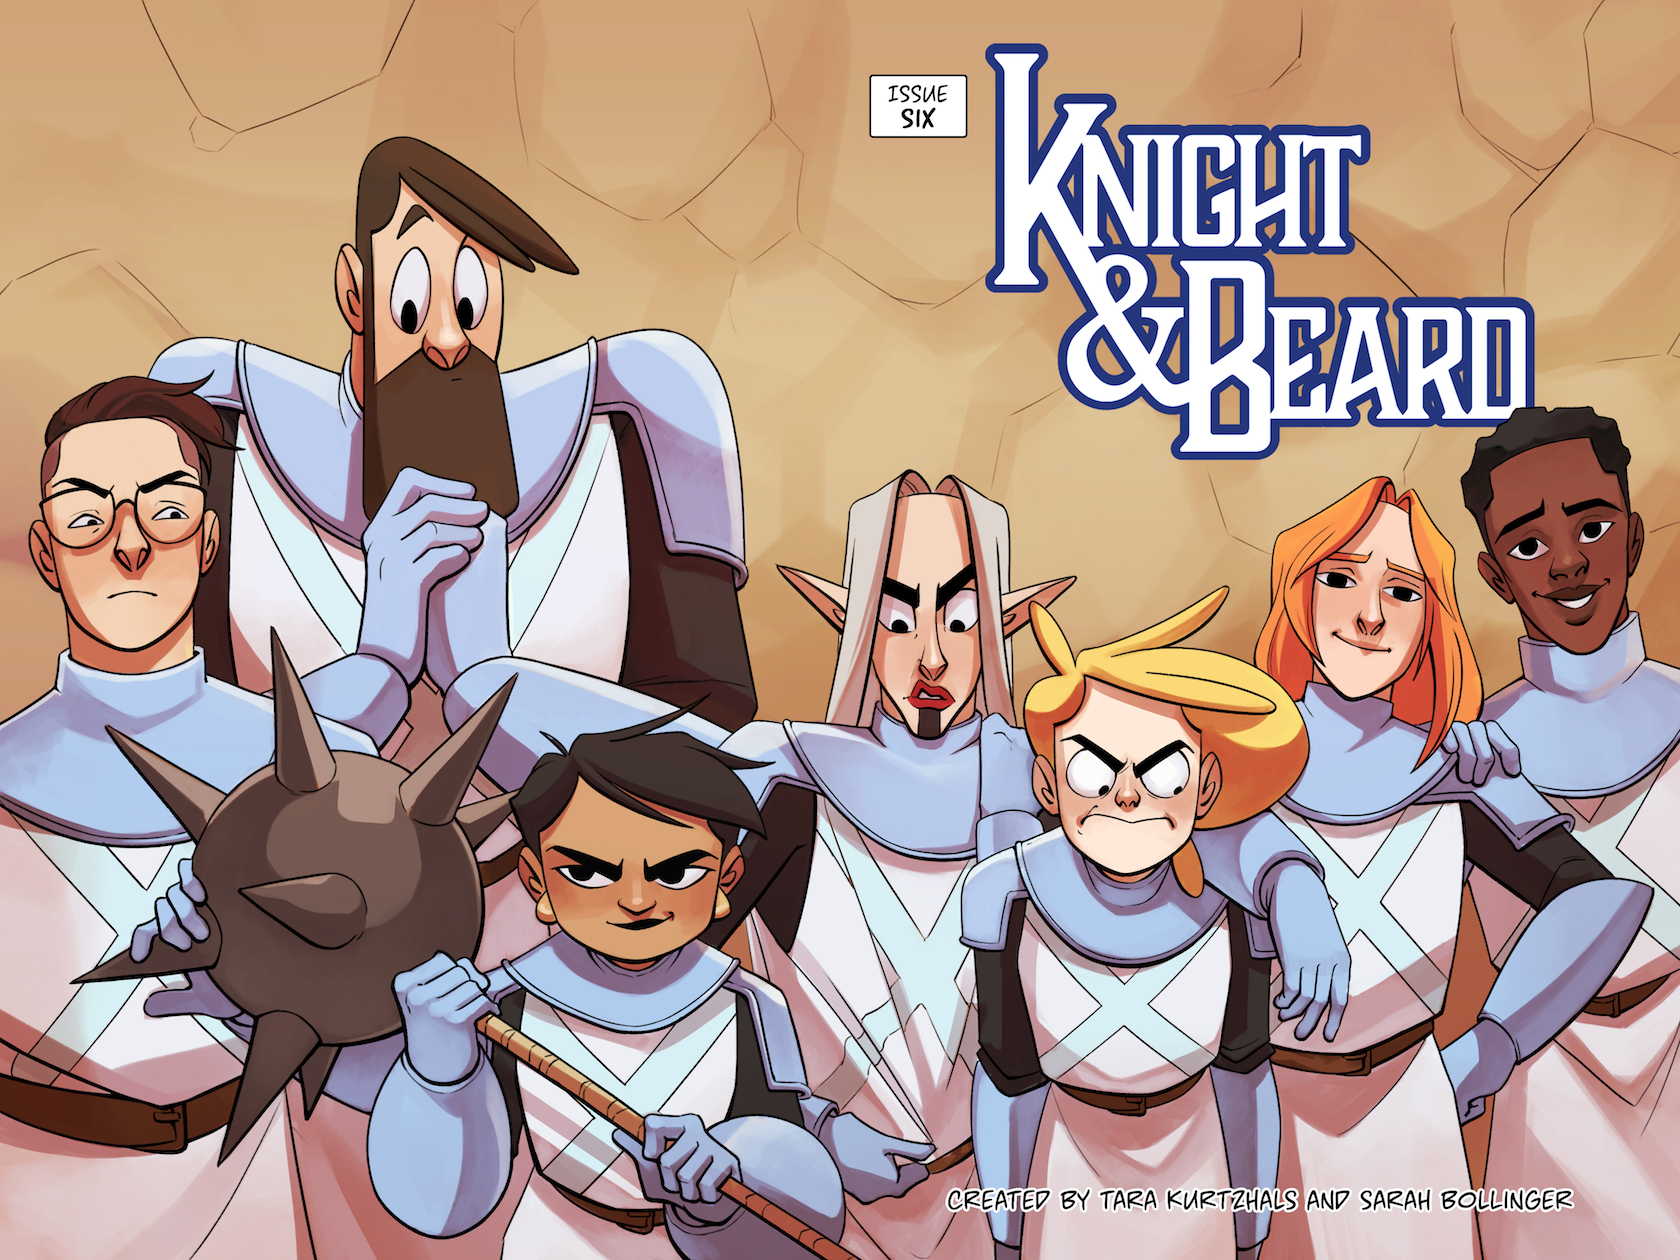 Knight & Beard 6 Cover